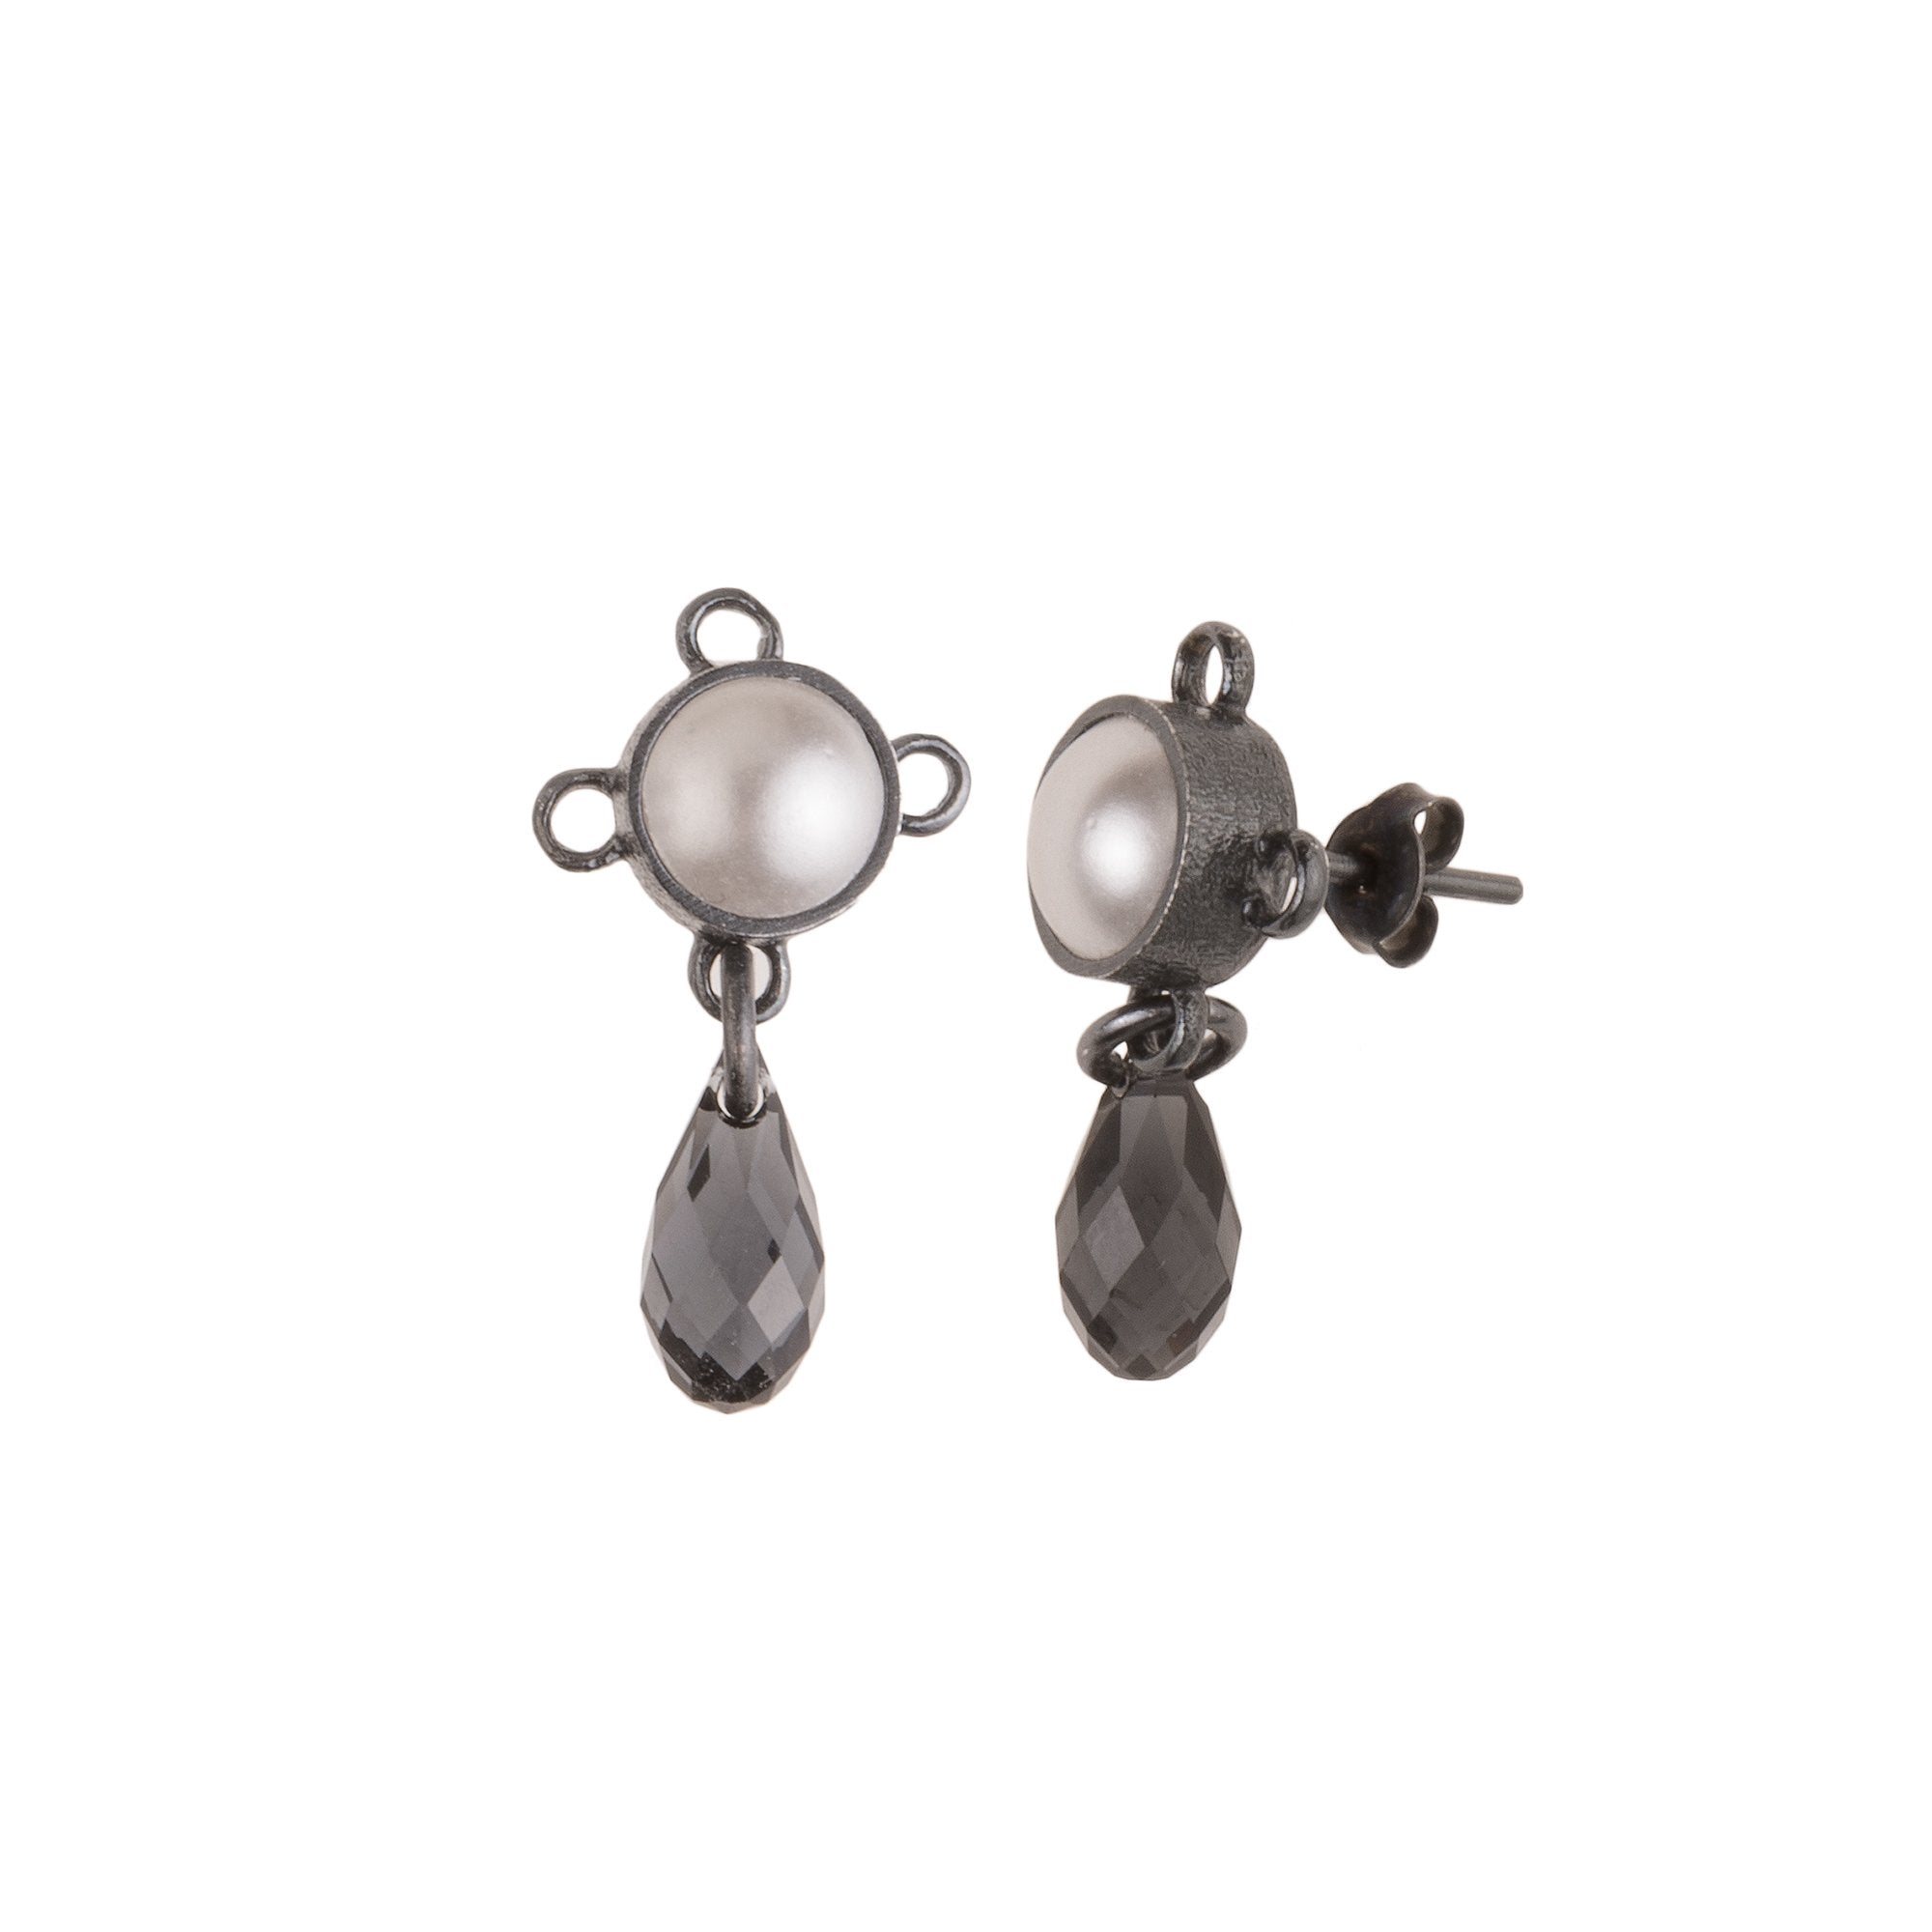 Earrings from Soda collection - SK26P